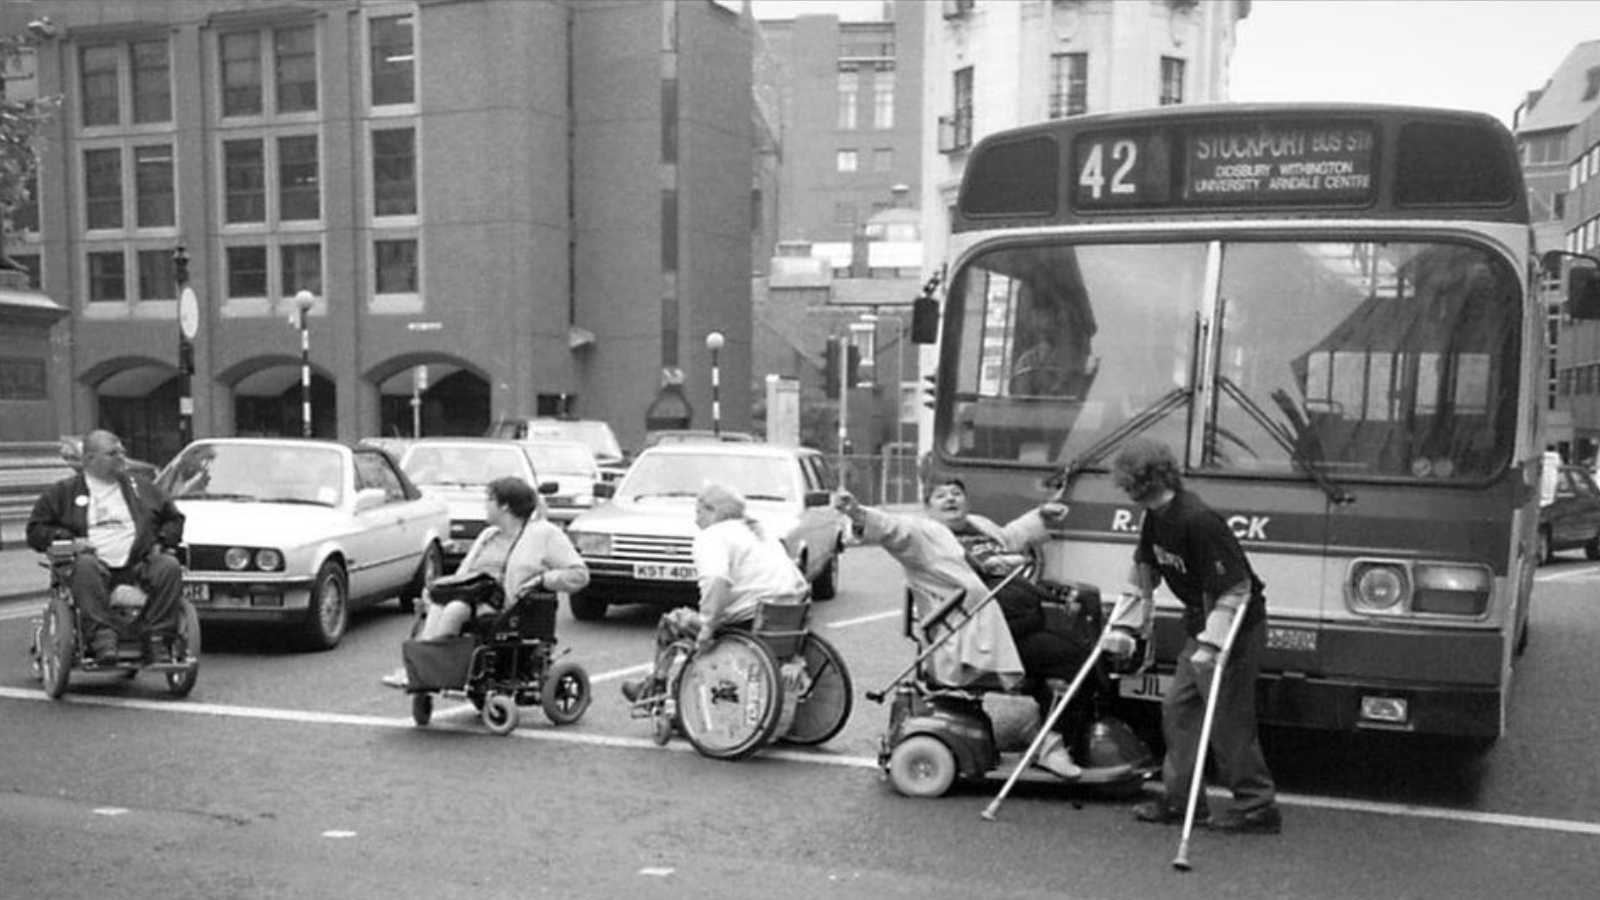 Folks in wheelchairs blocking a bus for disability rights